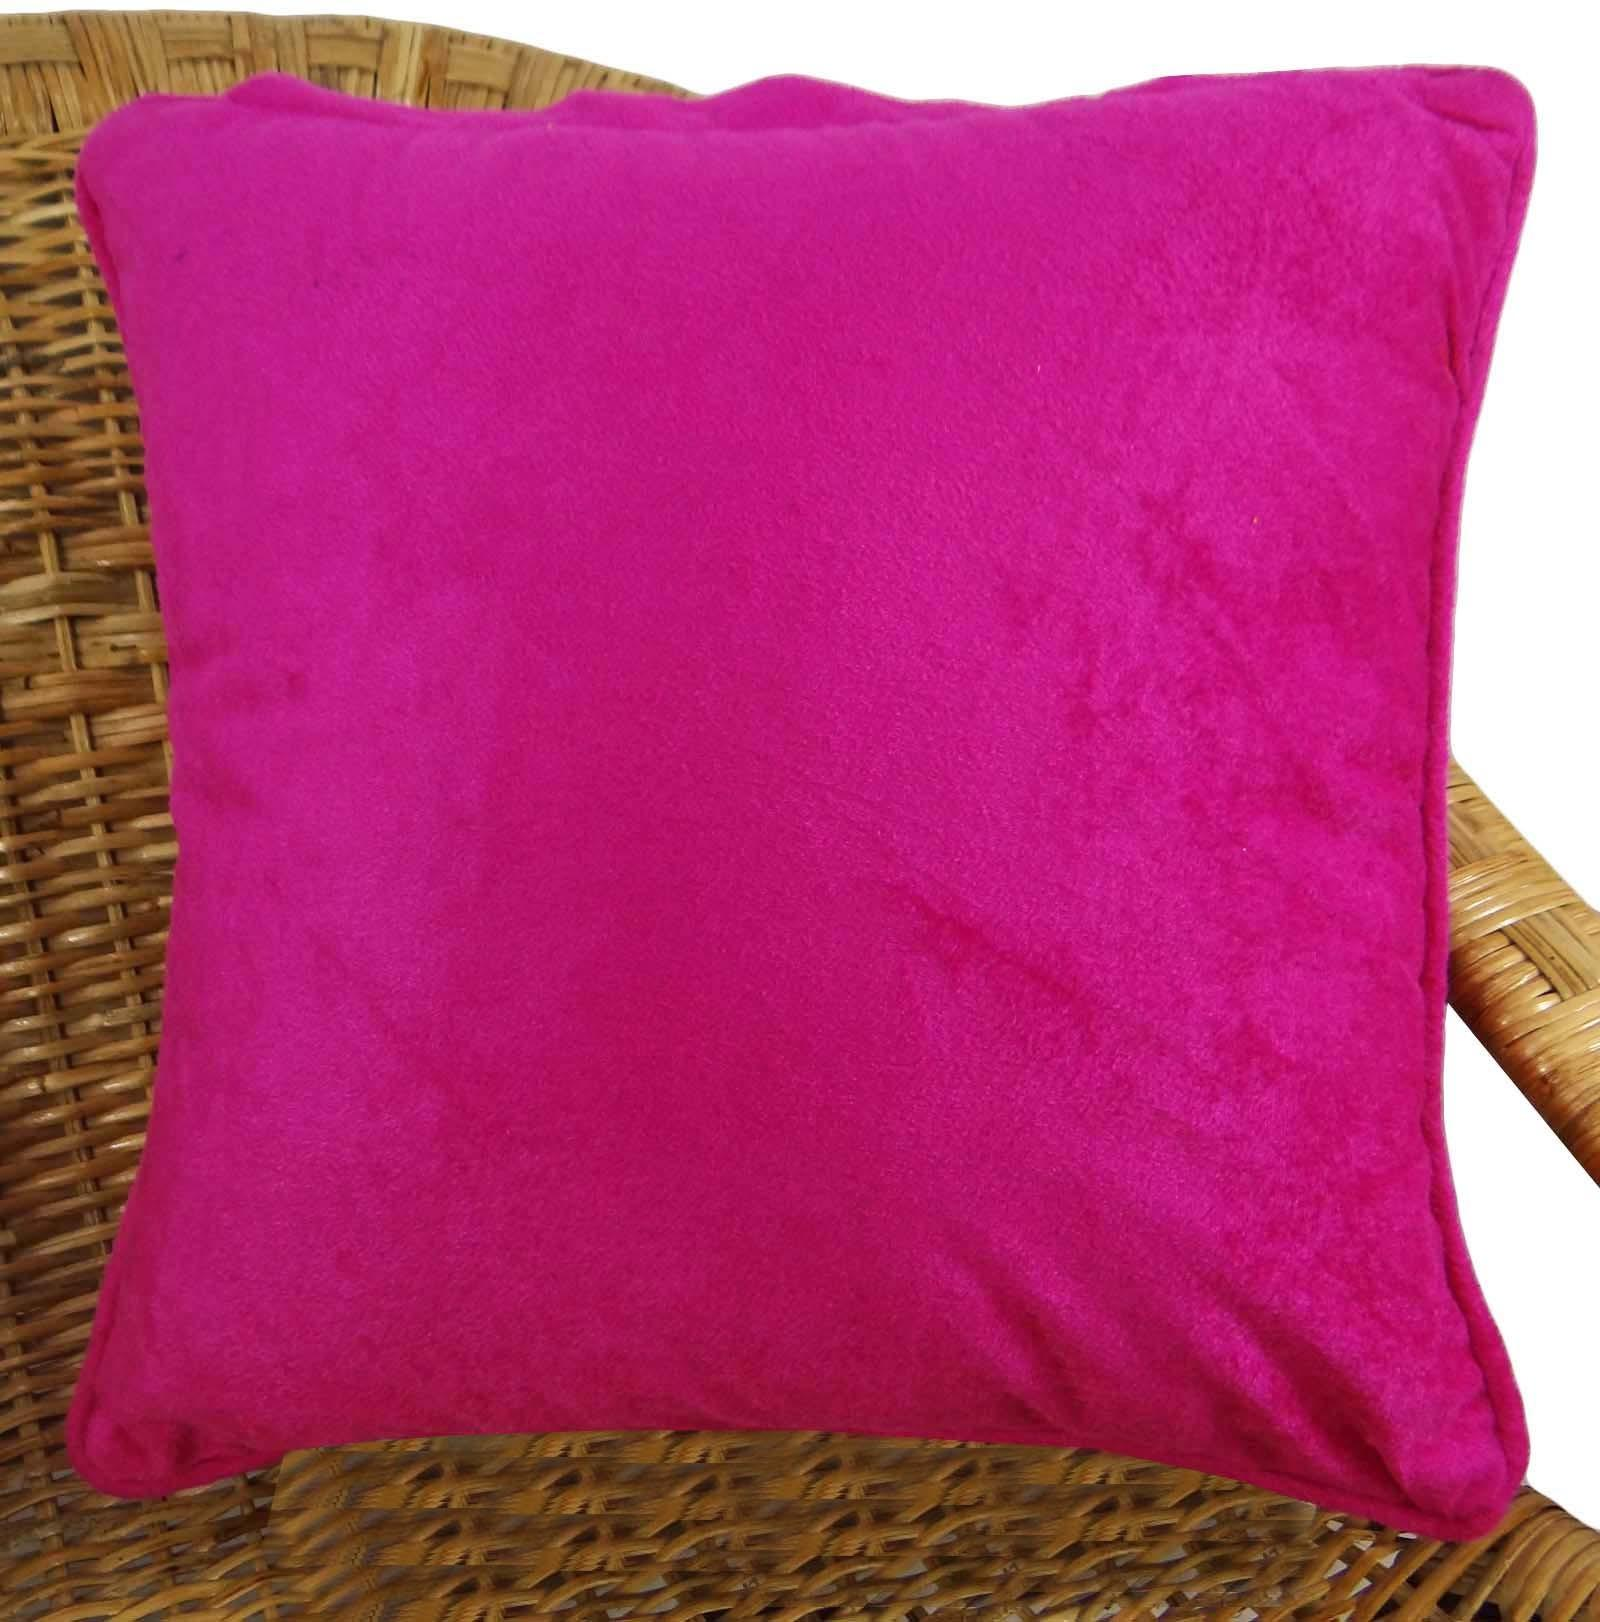 Indian Decorative Cushion Cover Home Decor Throw Bed